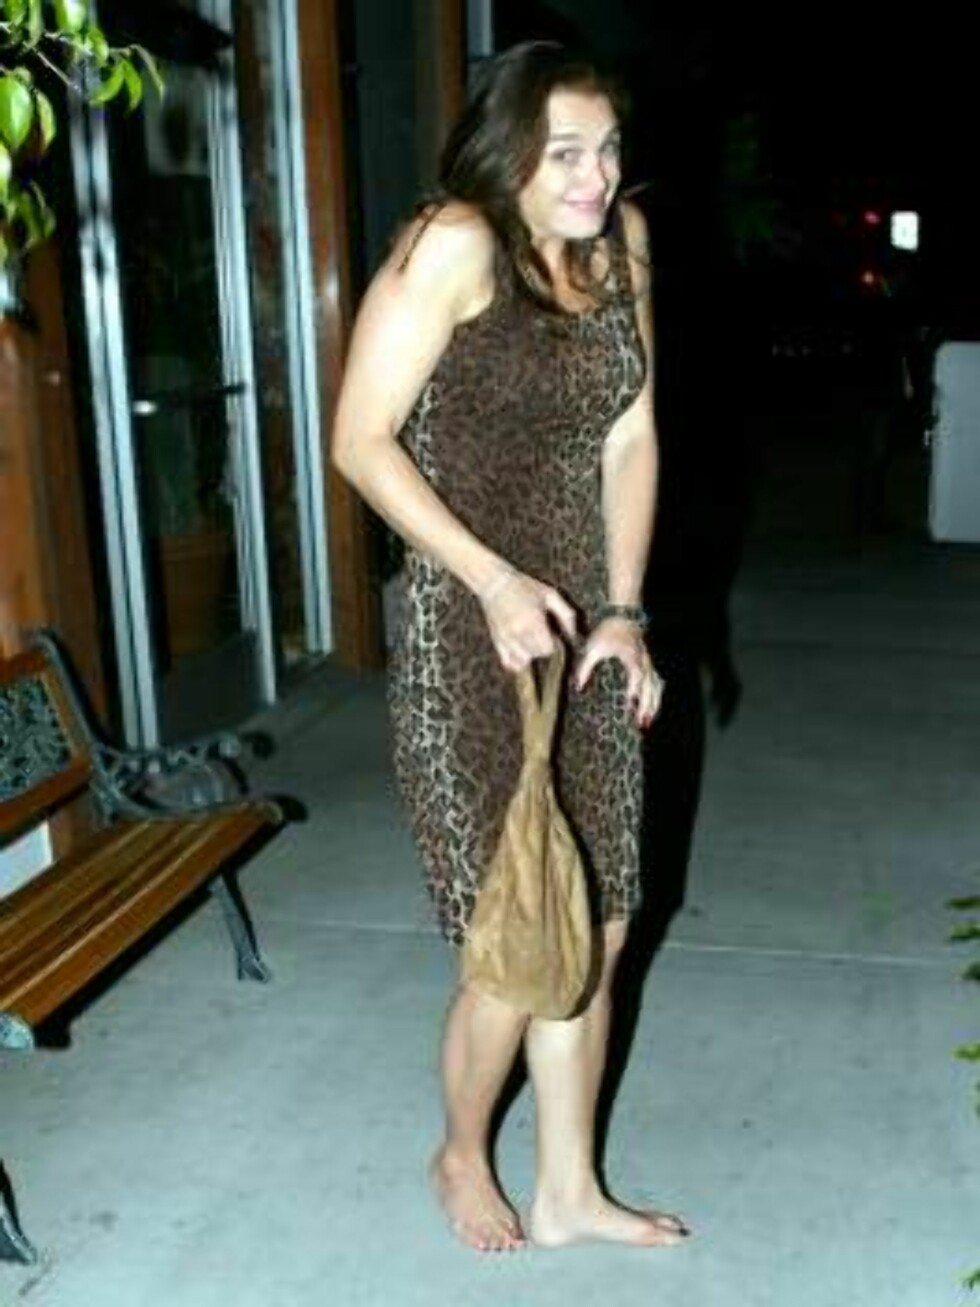 Brooke Shields leaves a restaurant whre it seems she forgot her shoes!!! June 18, 2006 X17agency EXCLUSIVE Foto: All Over Press